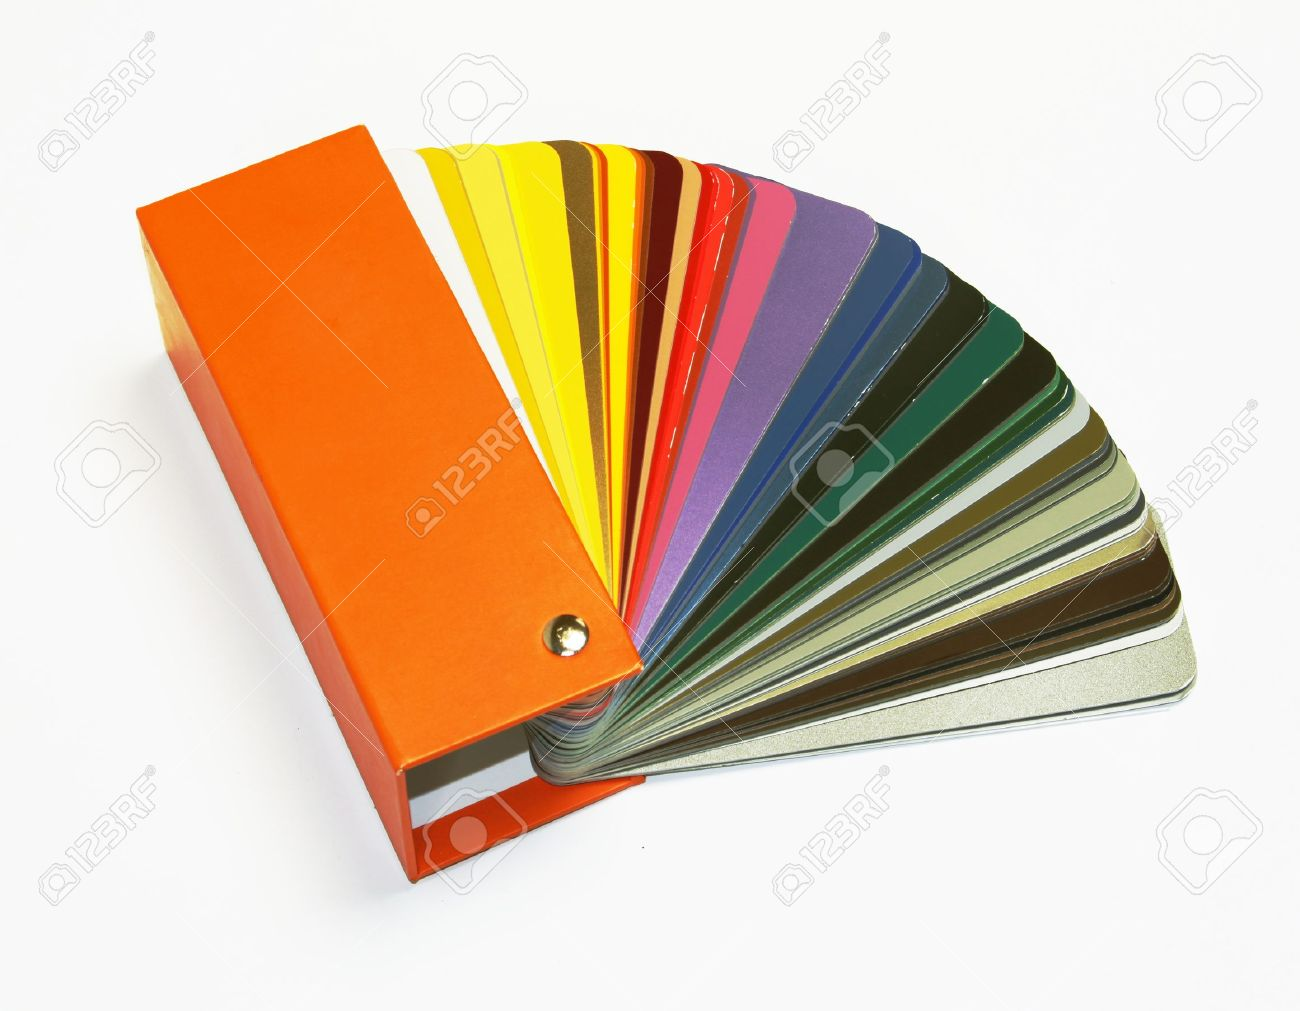 open ral sample colors catalogue stock photo picture and royalty